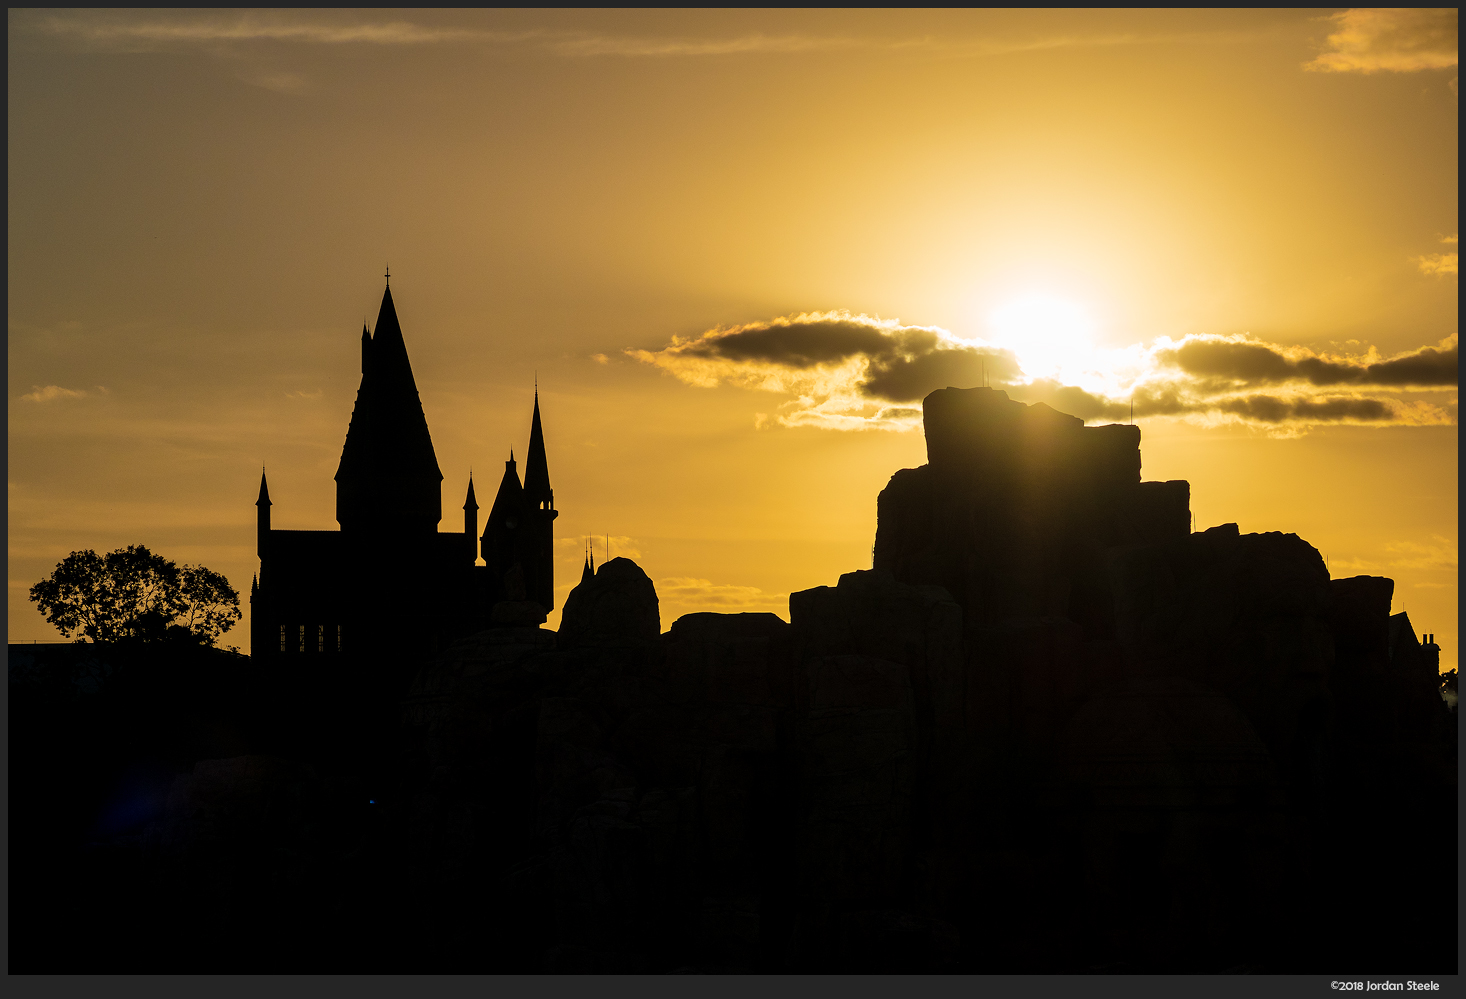 Hogwarts at Sunset - Universal's Islands of Advnture - Canon G7 X Mark II @ 36.8mm, f/3.5, 1/2000s, ISO 125